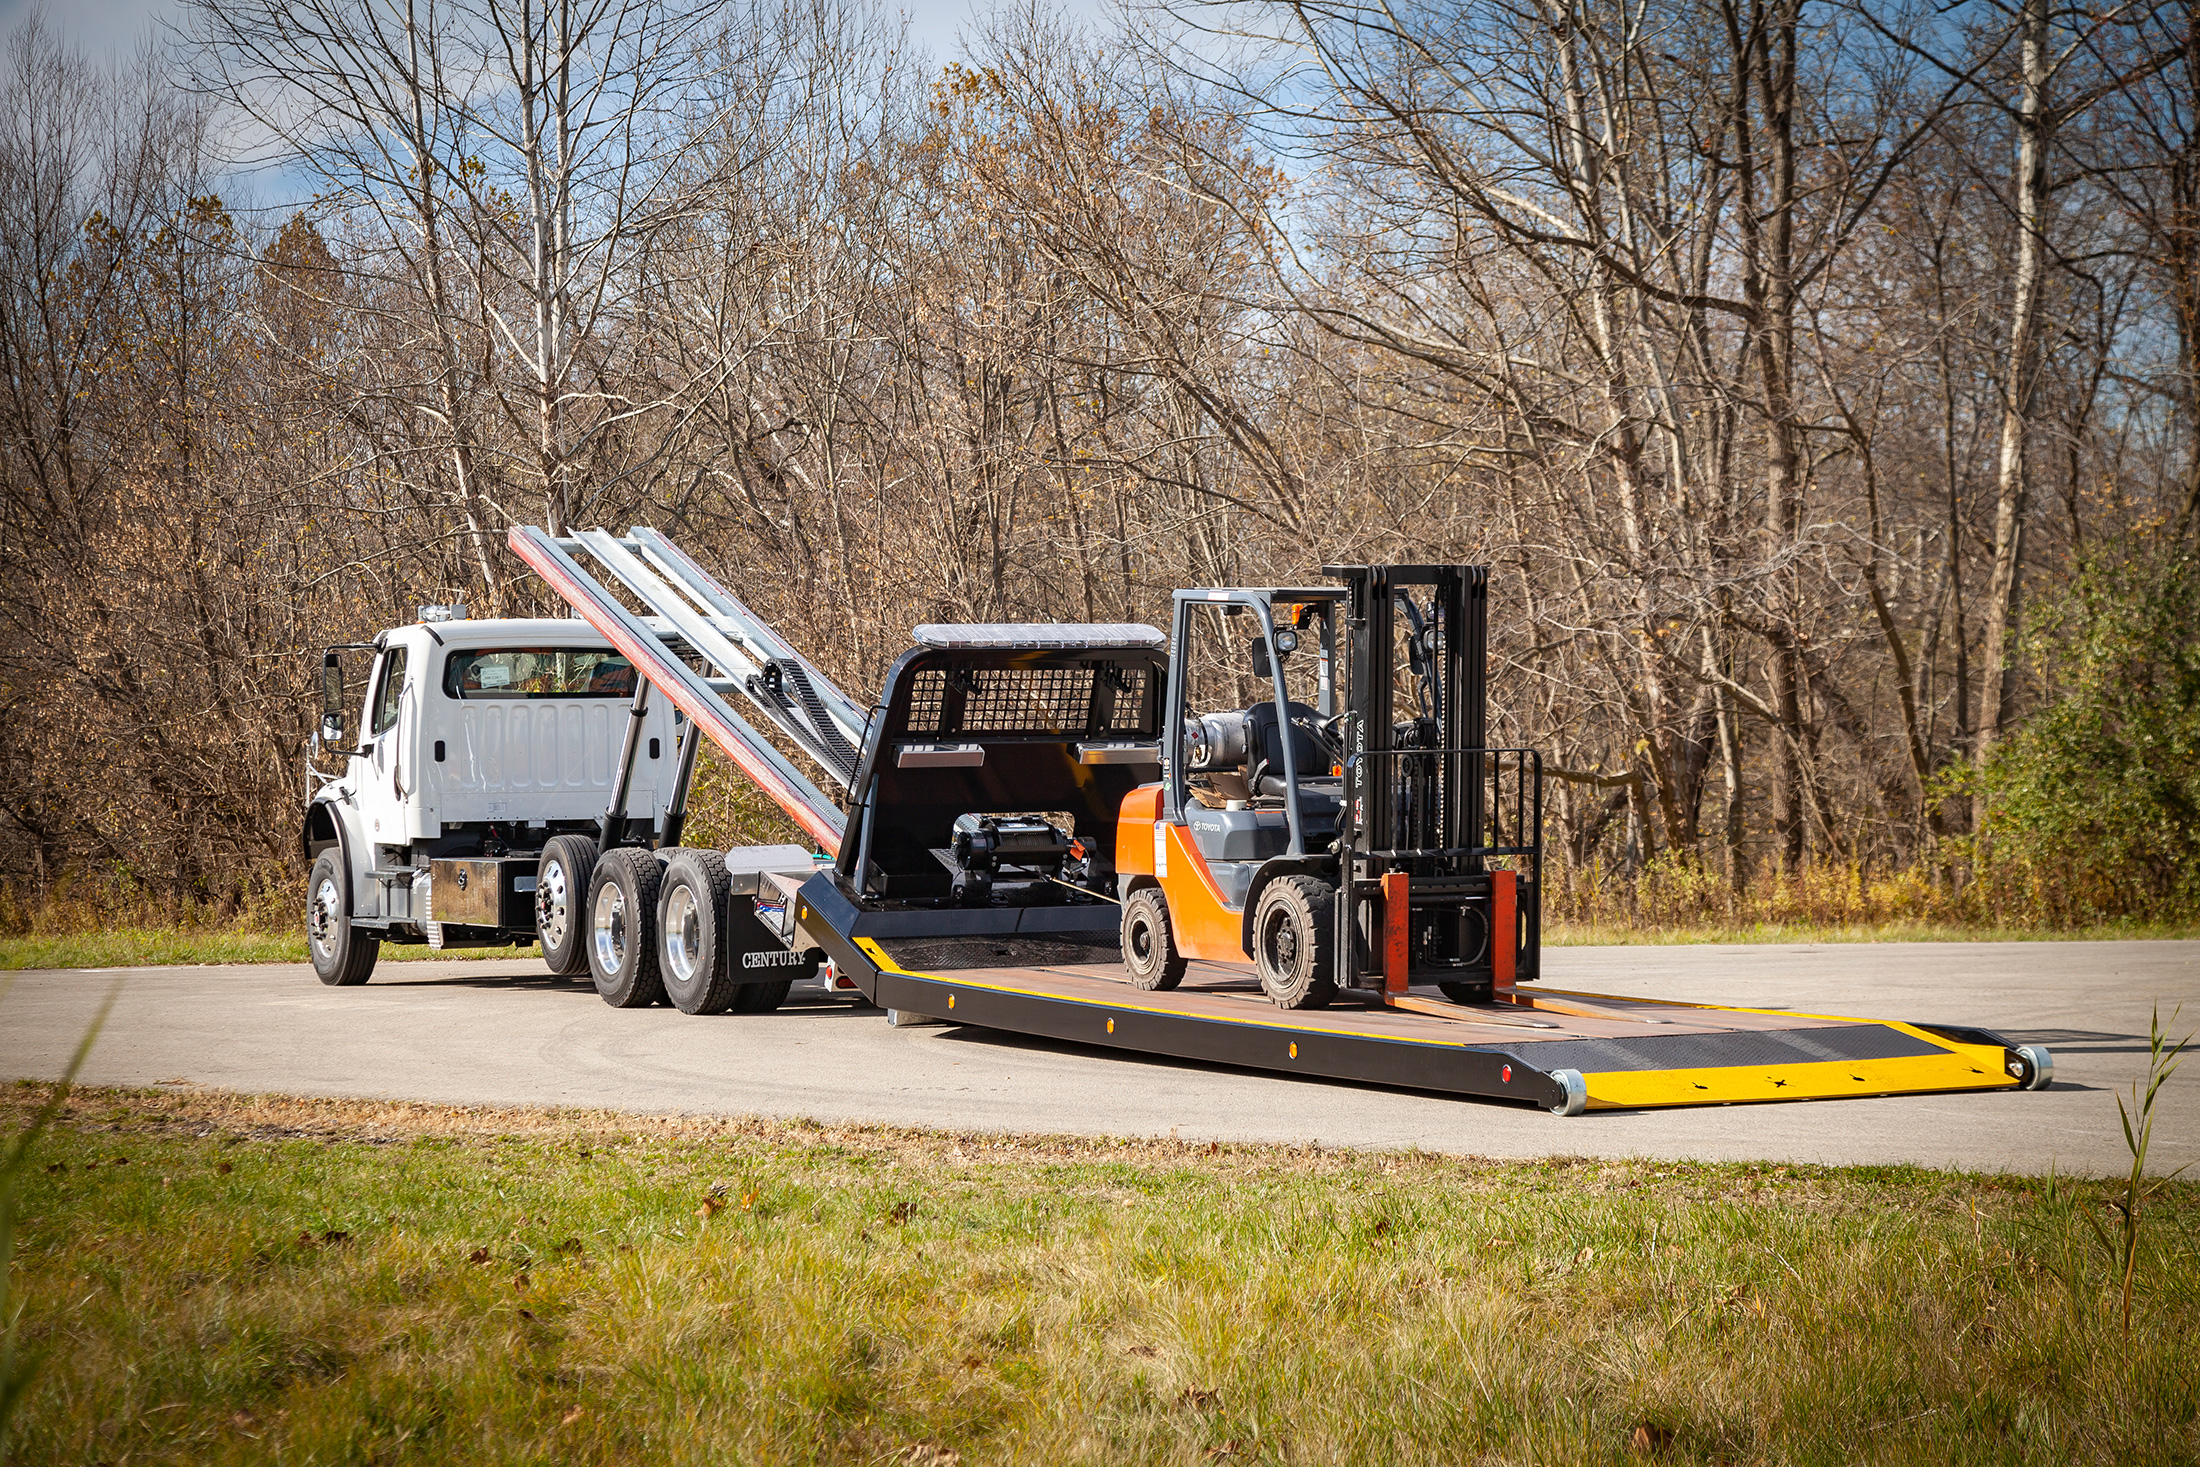 titan zla on white Freightliner m2 chassis with forklift bed on ground zero load angle